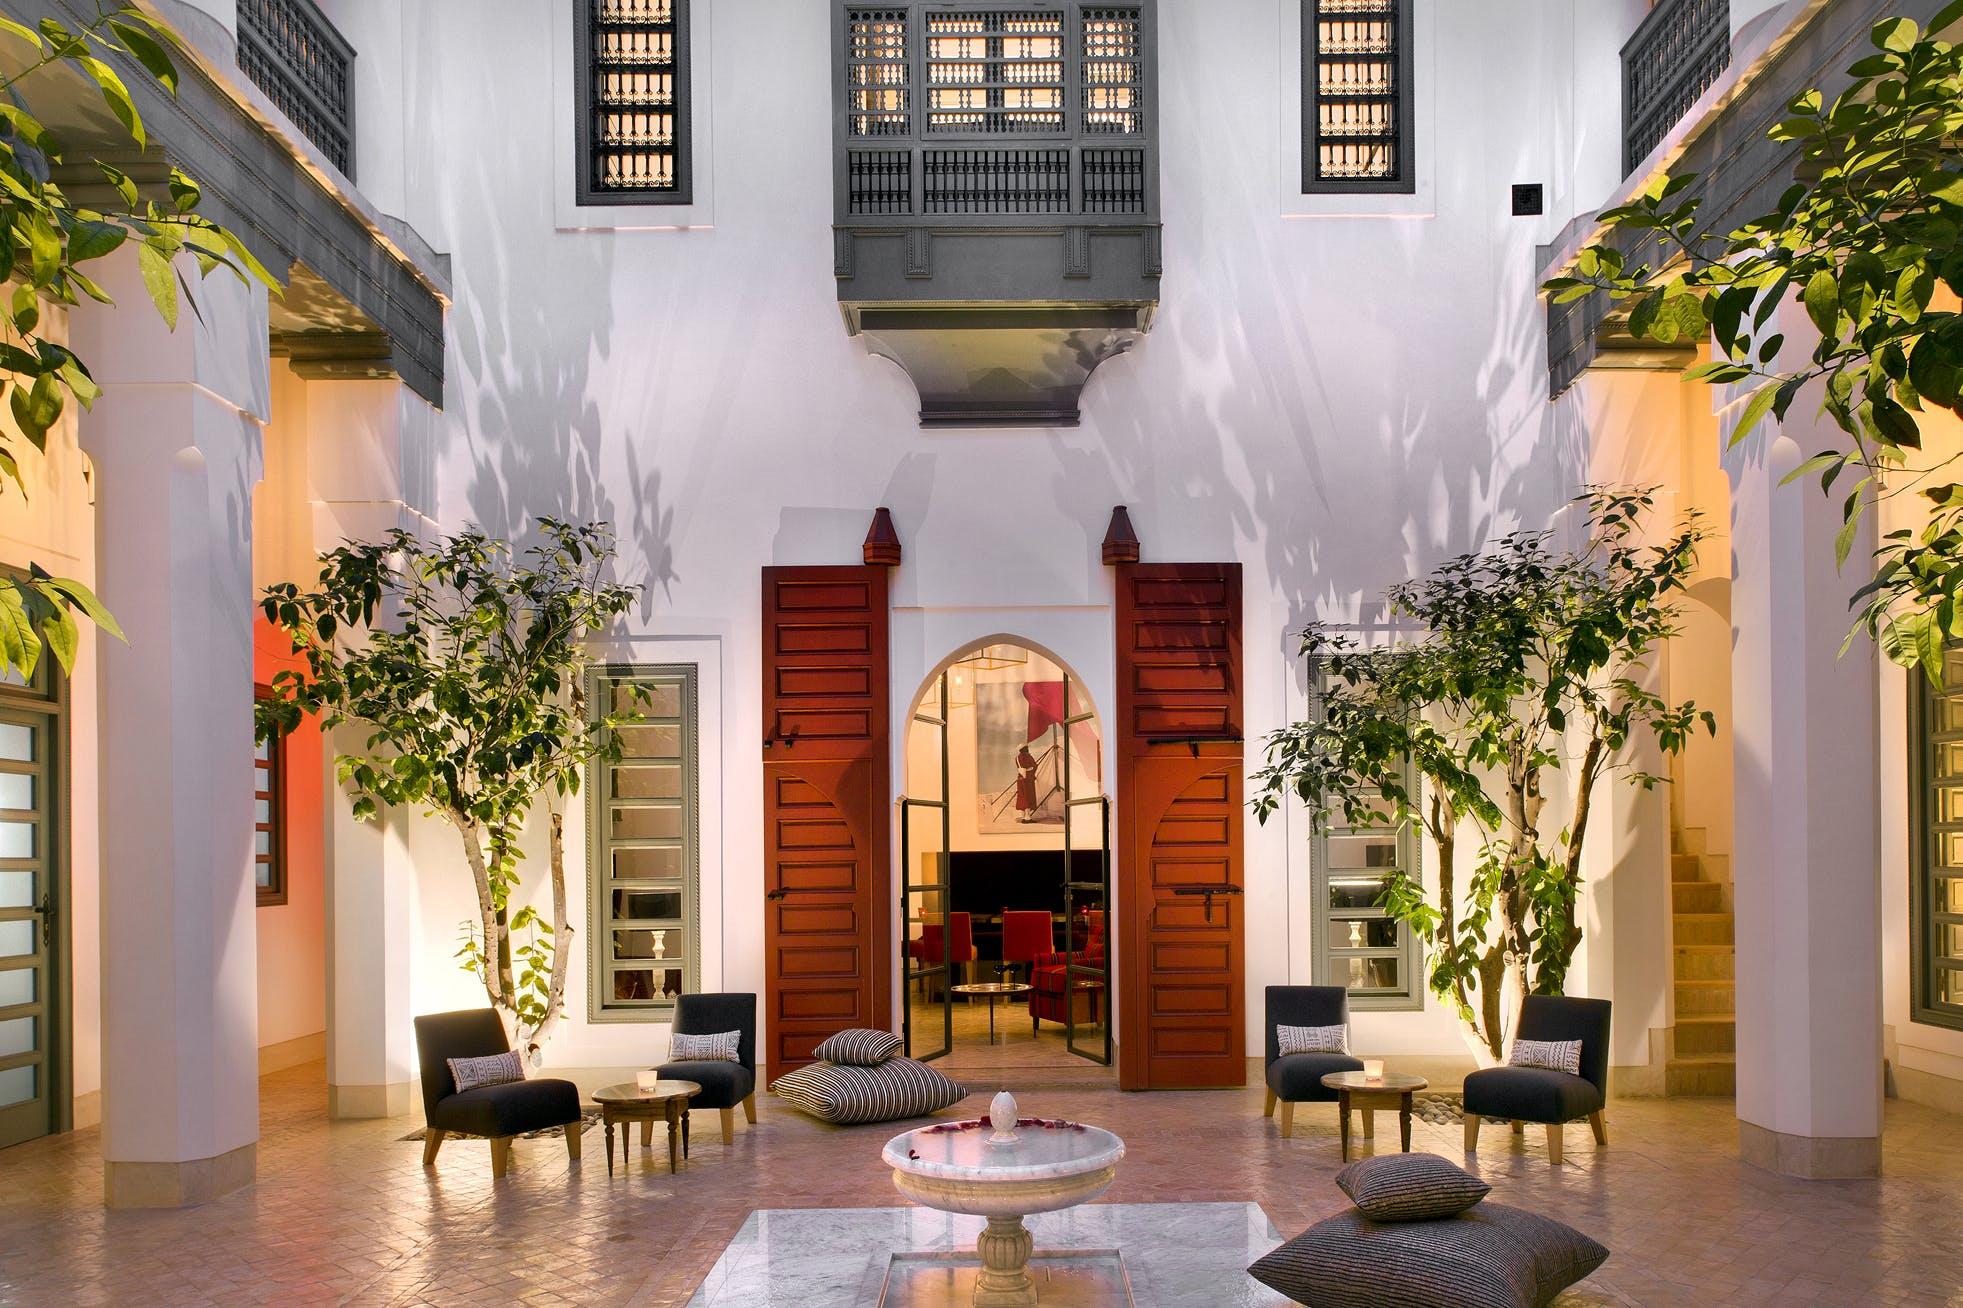 Rent luxury riad Marrakech